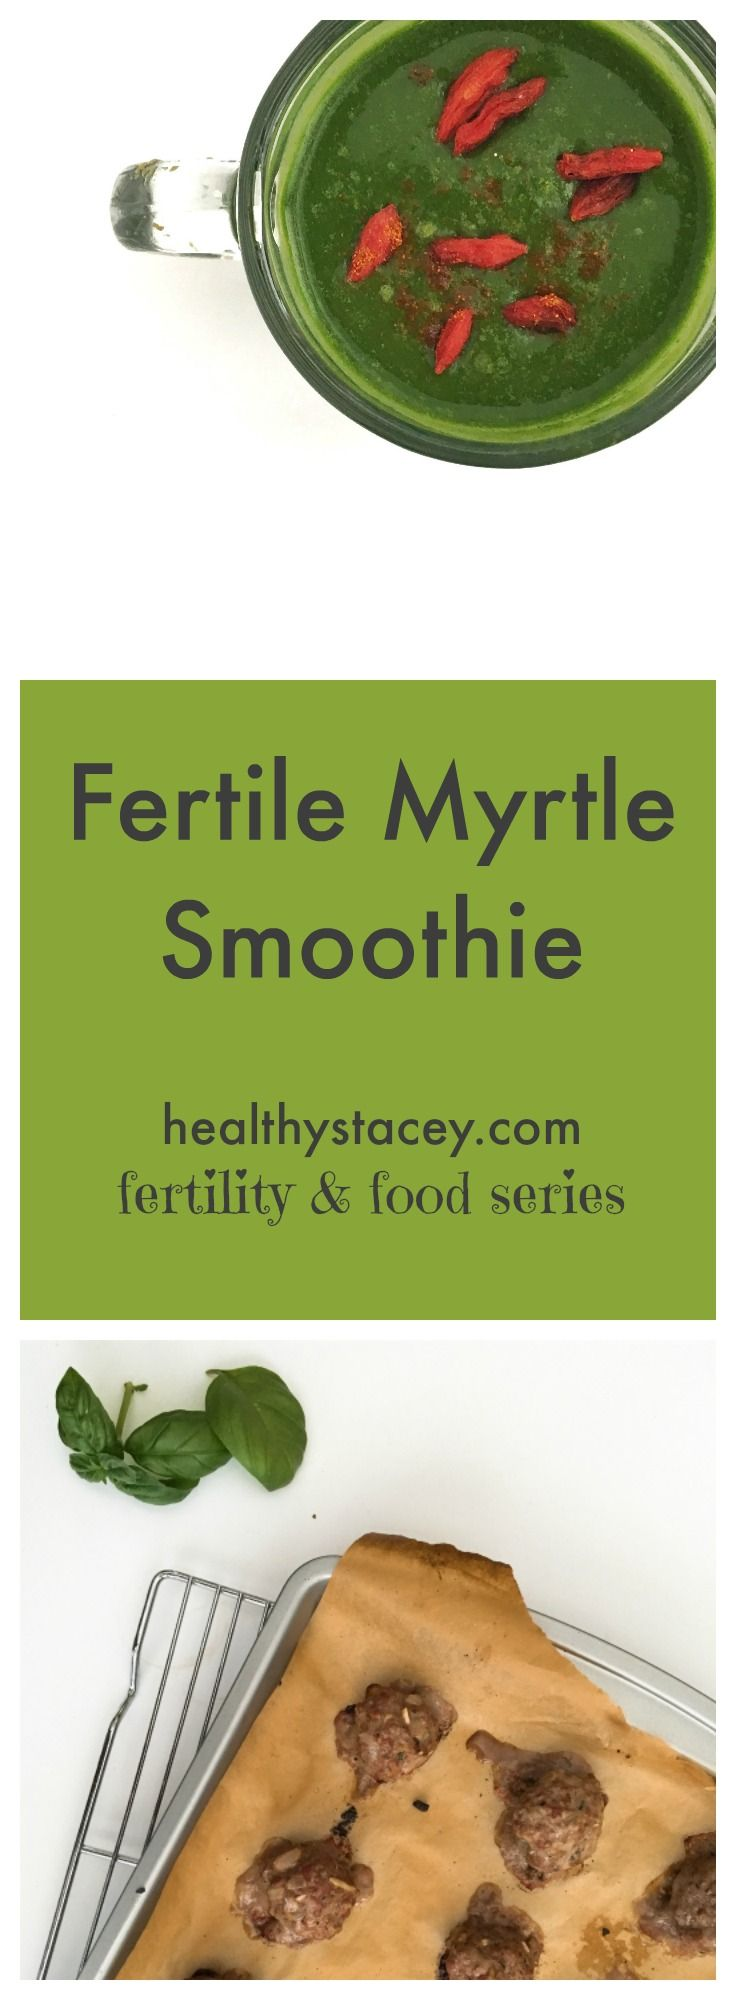 Welcome to my Food & Fertility Series. My self-experiment on making babies the paleo way. Includes Fertile Myrtle Superfood Smoothie.